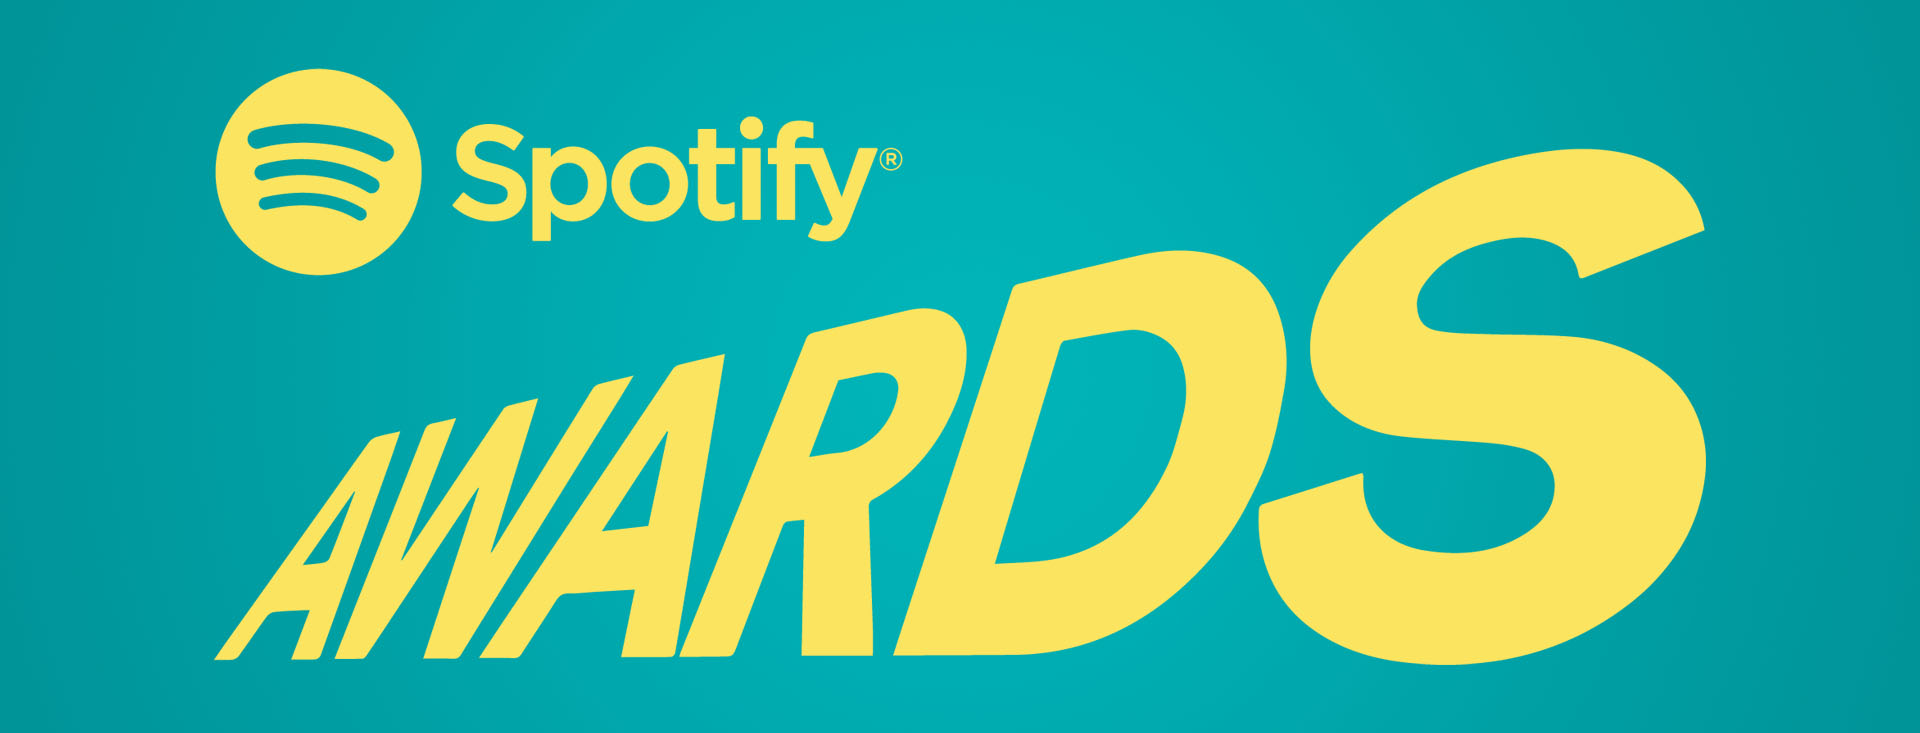 Spotify Awards Reveal Winners in Mexico City Based On Platform Streaming Data